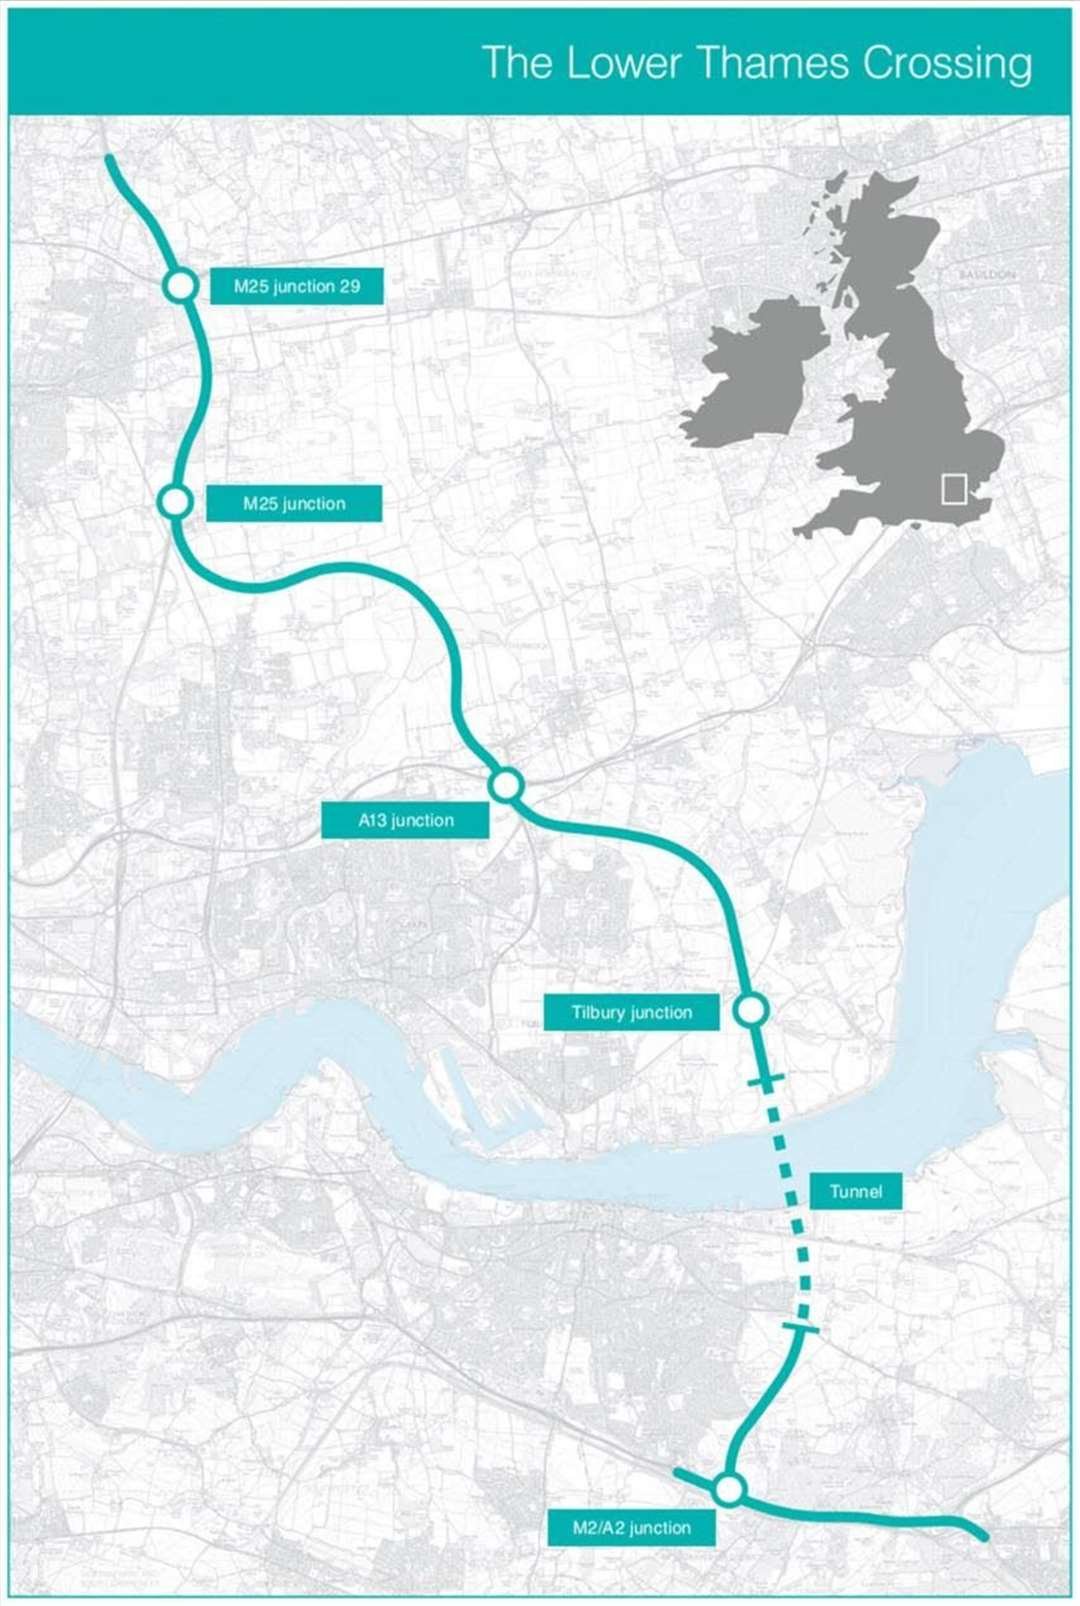 The latest proposed route of the new Lower Thames Crossing